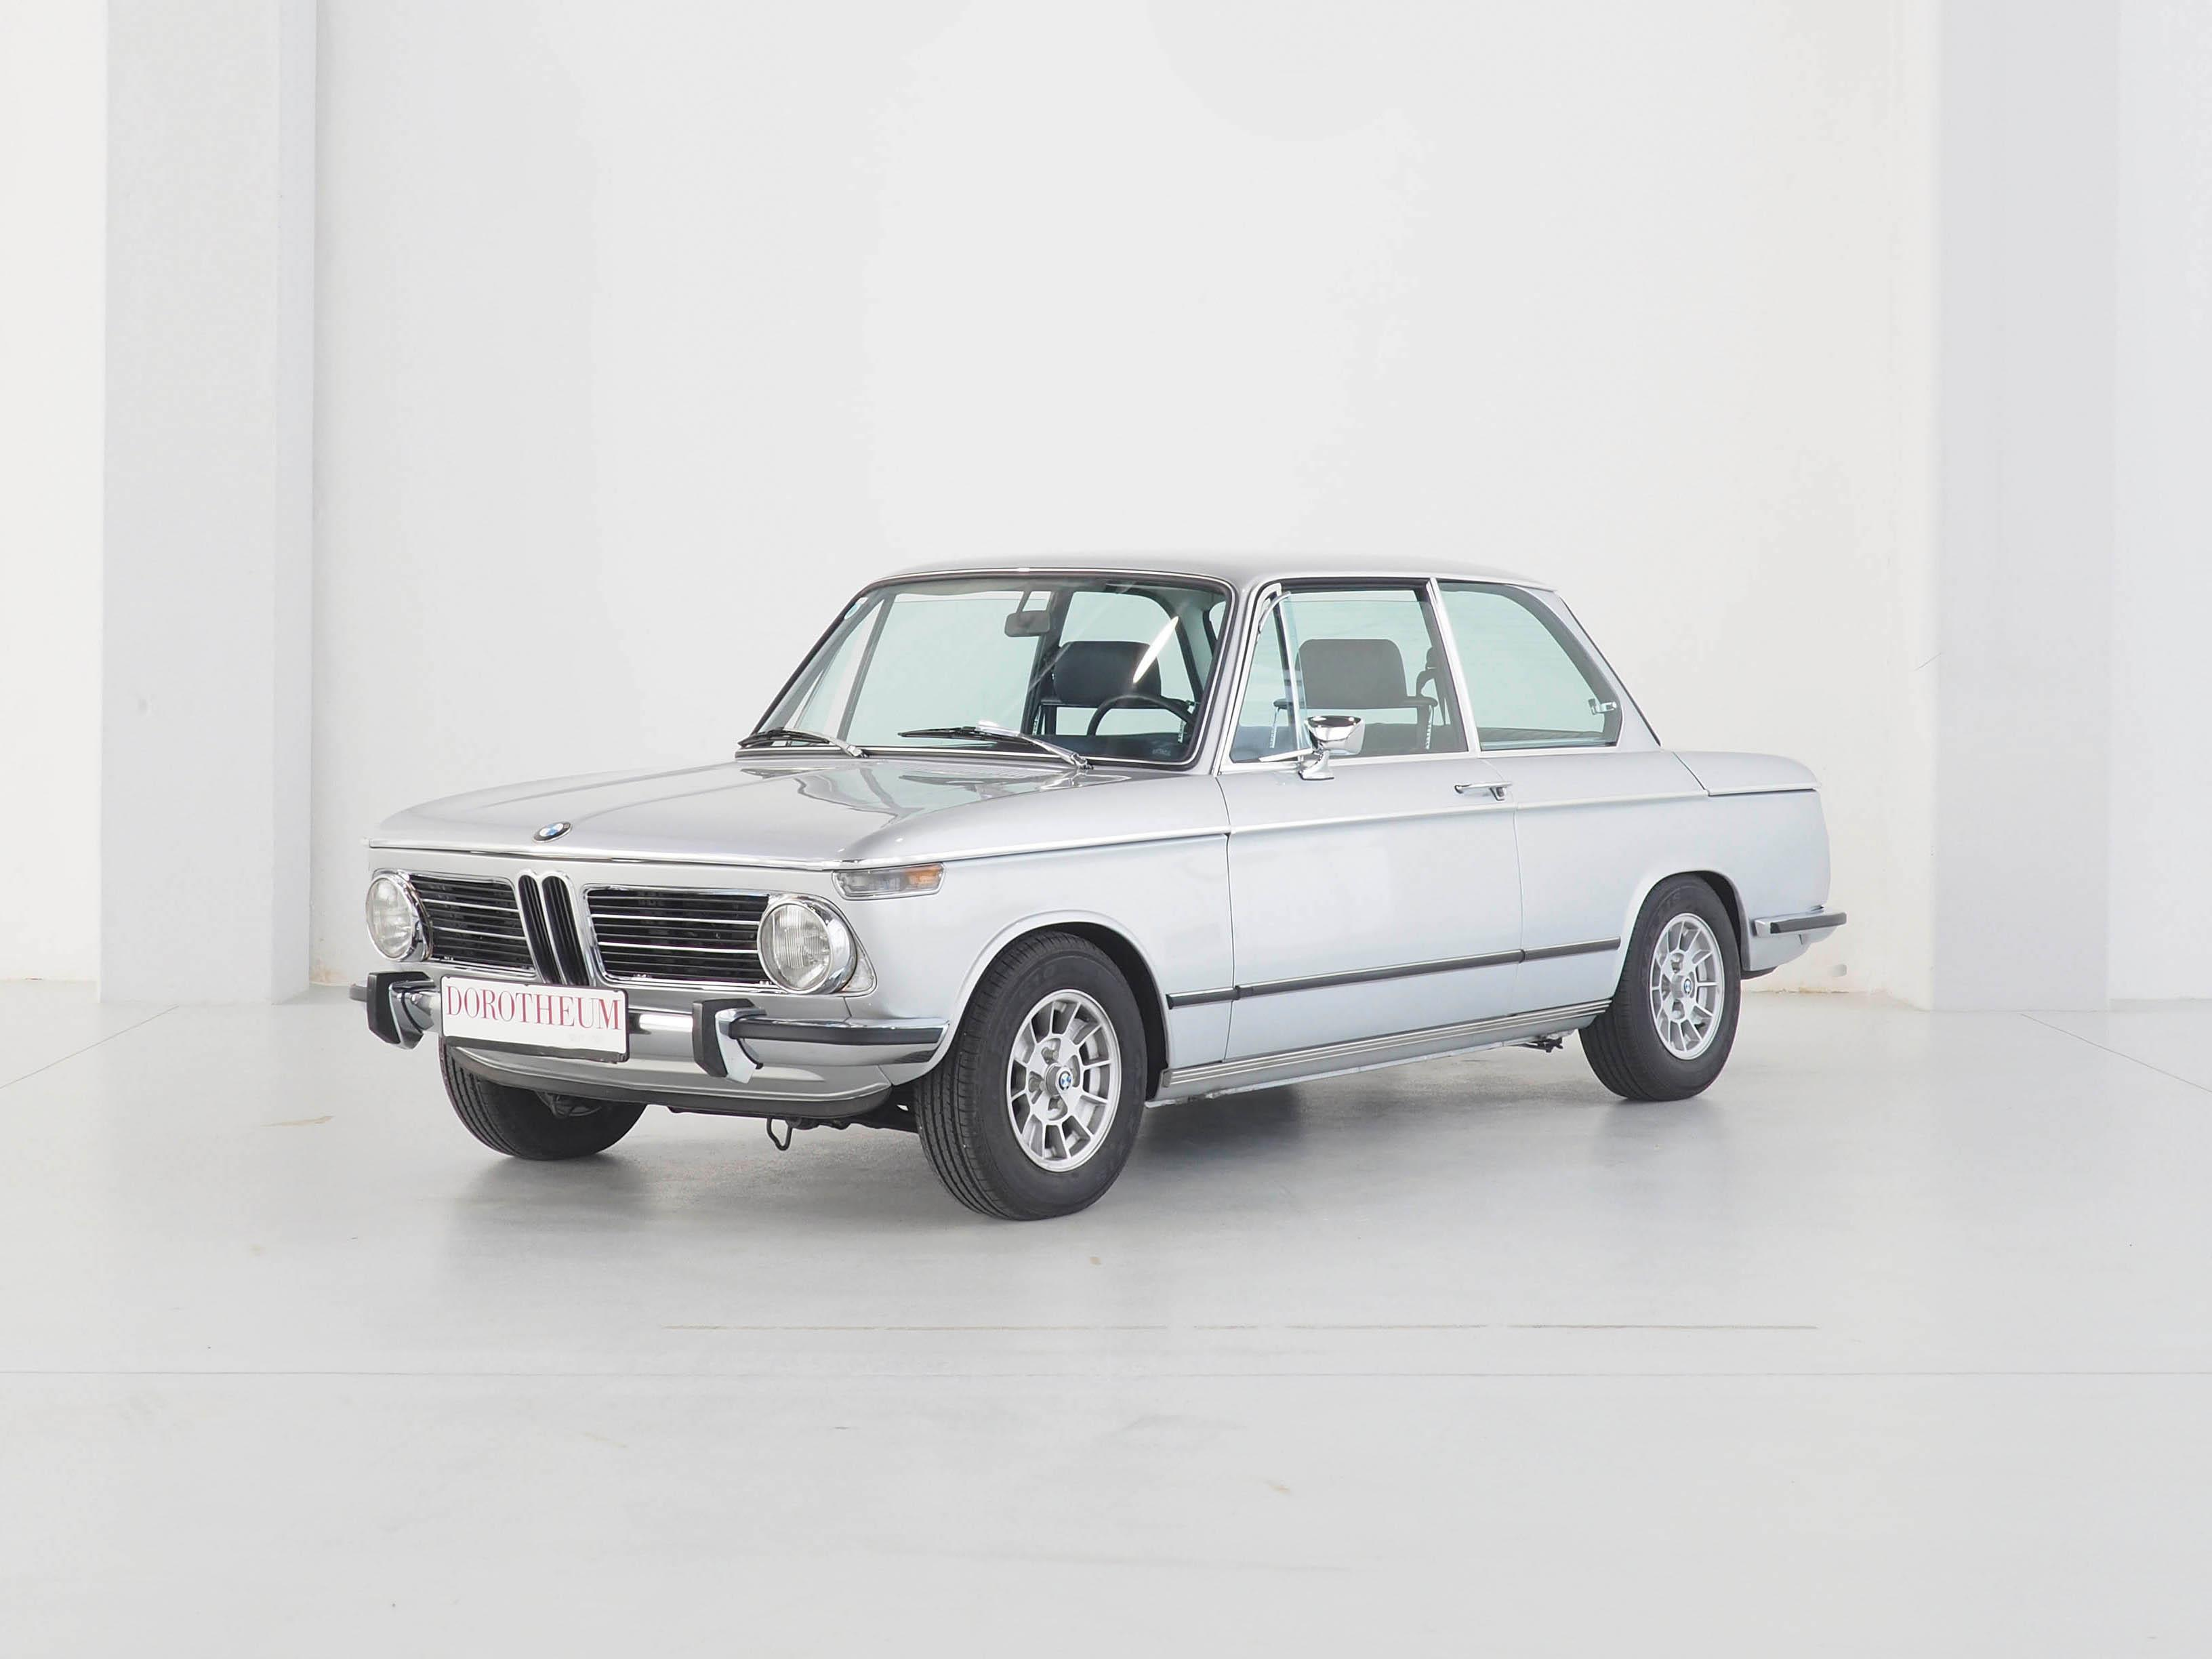 1973 Bmw 2002 Tii Classic Cars 2017 10 21 Realized Price Eur 33 350 Dorotheum